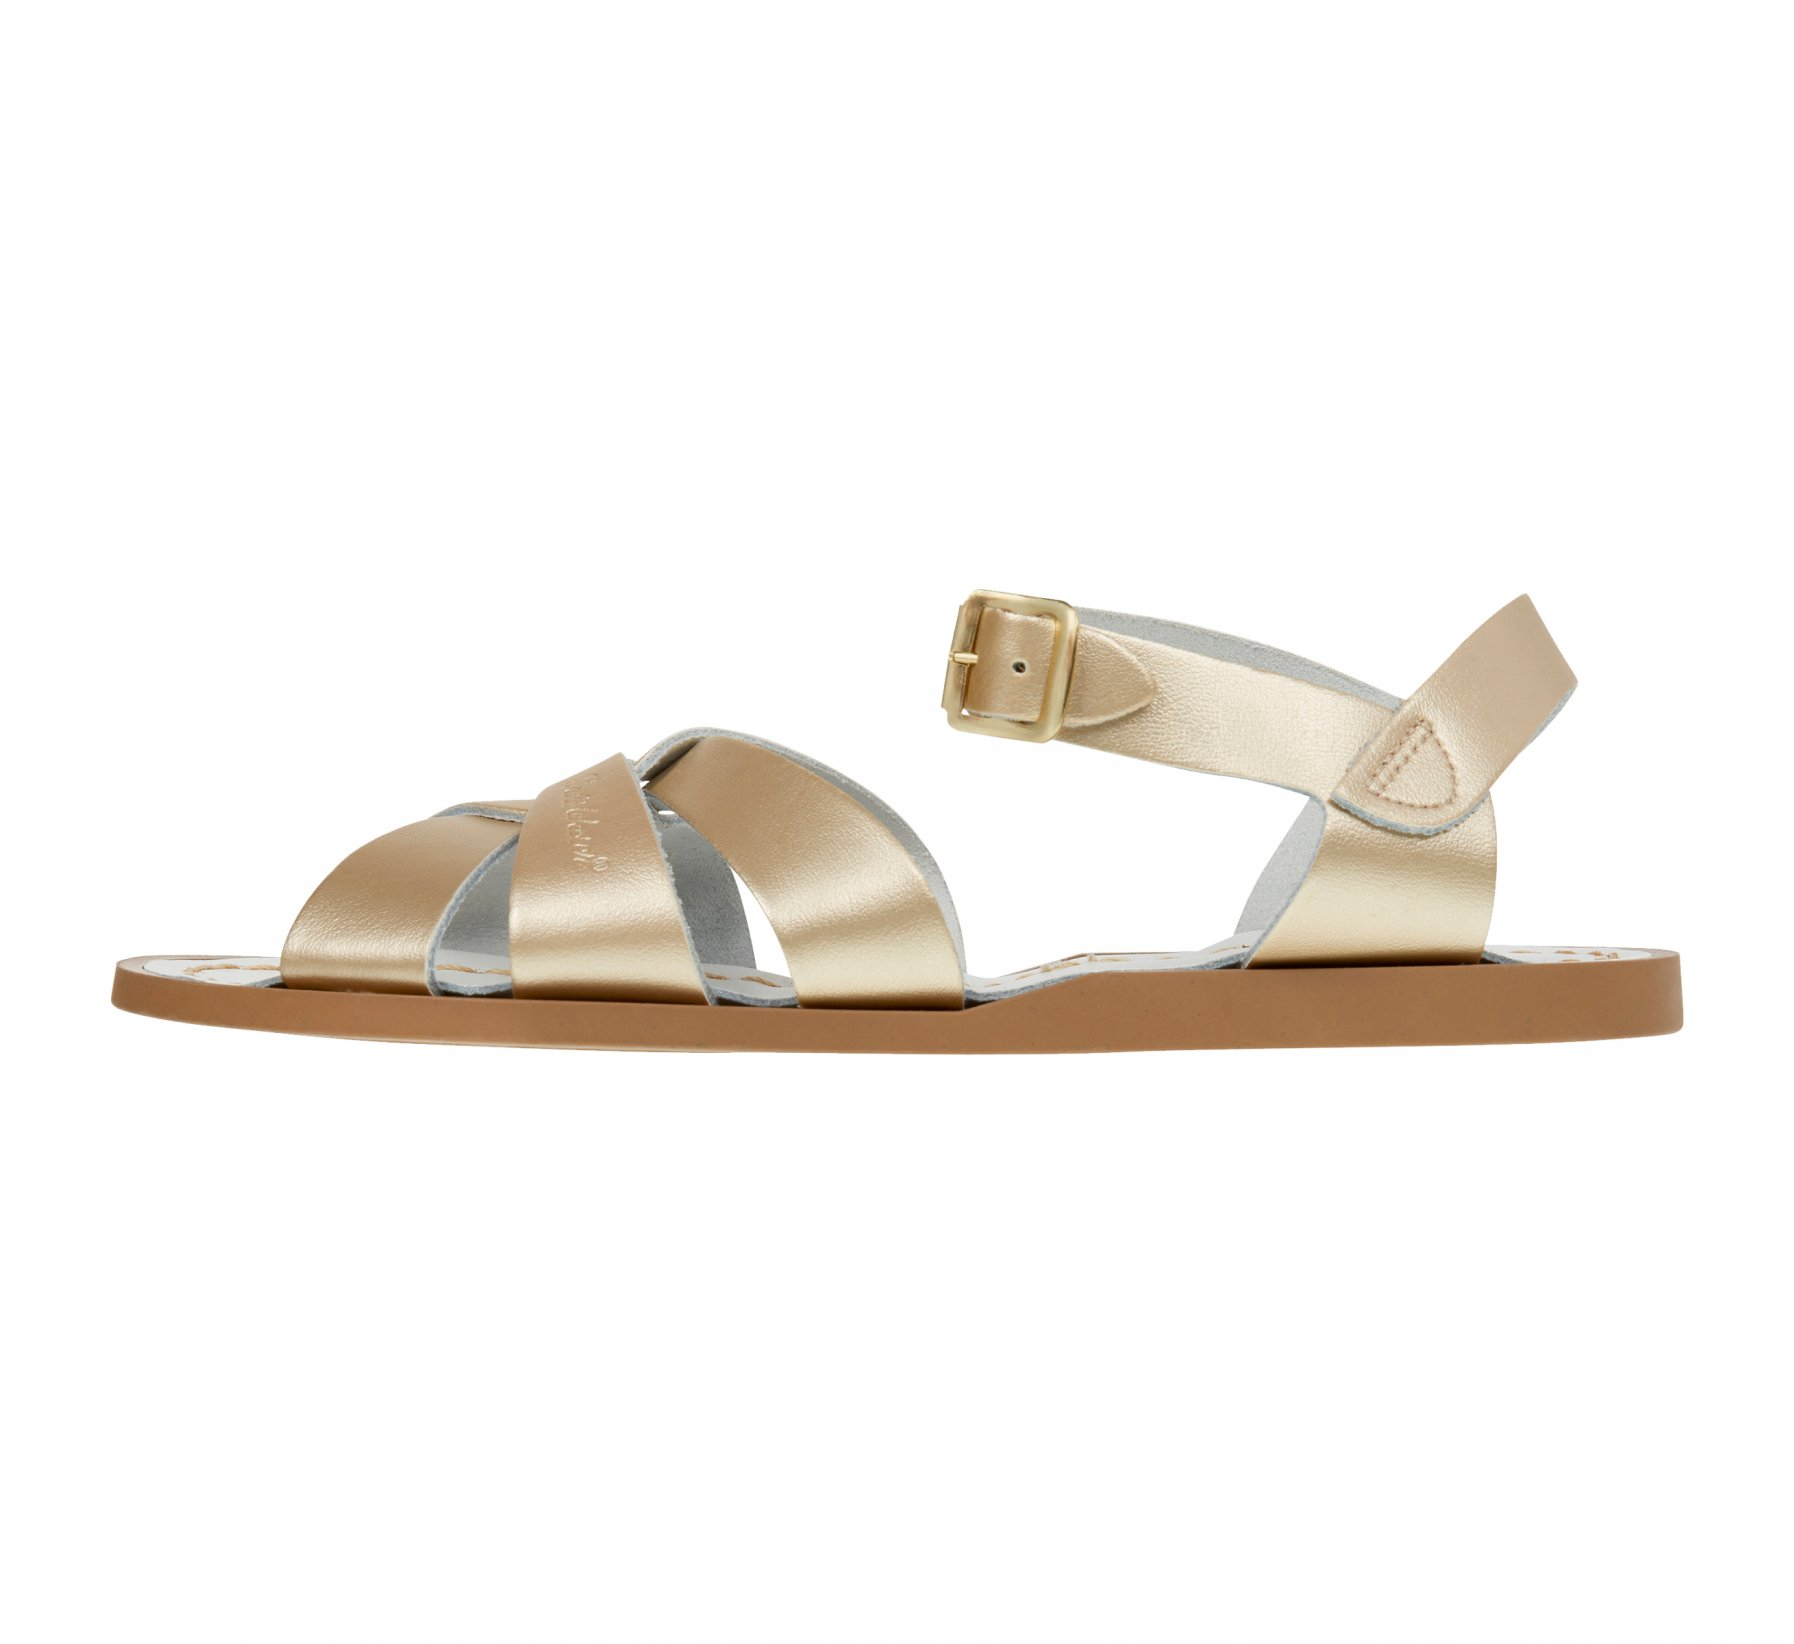 Original Emas - Salt Water Sandals